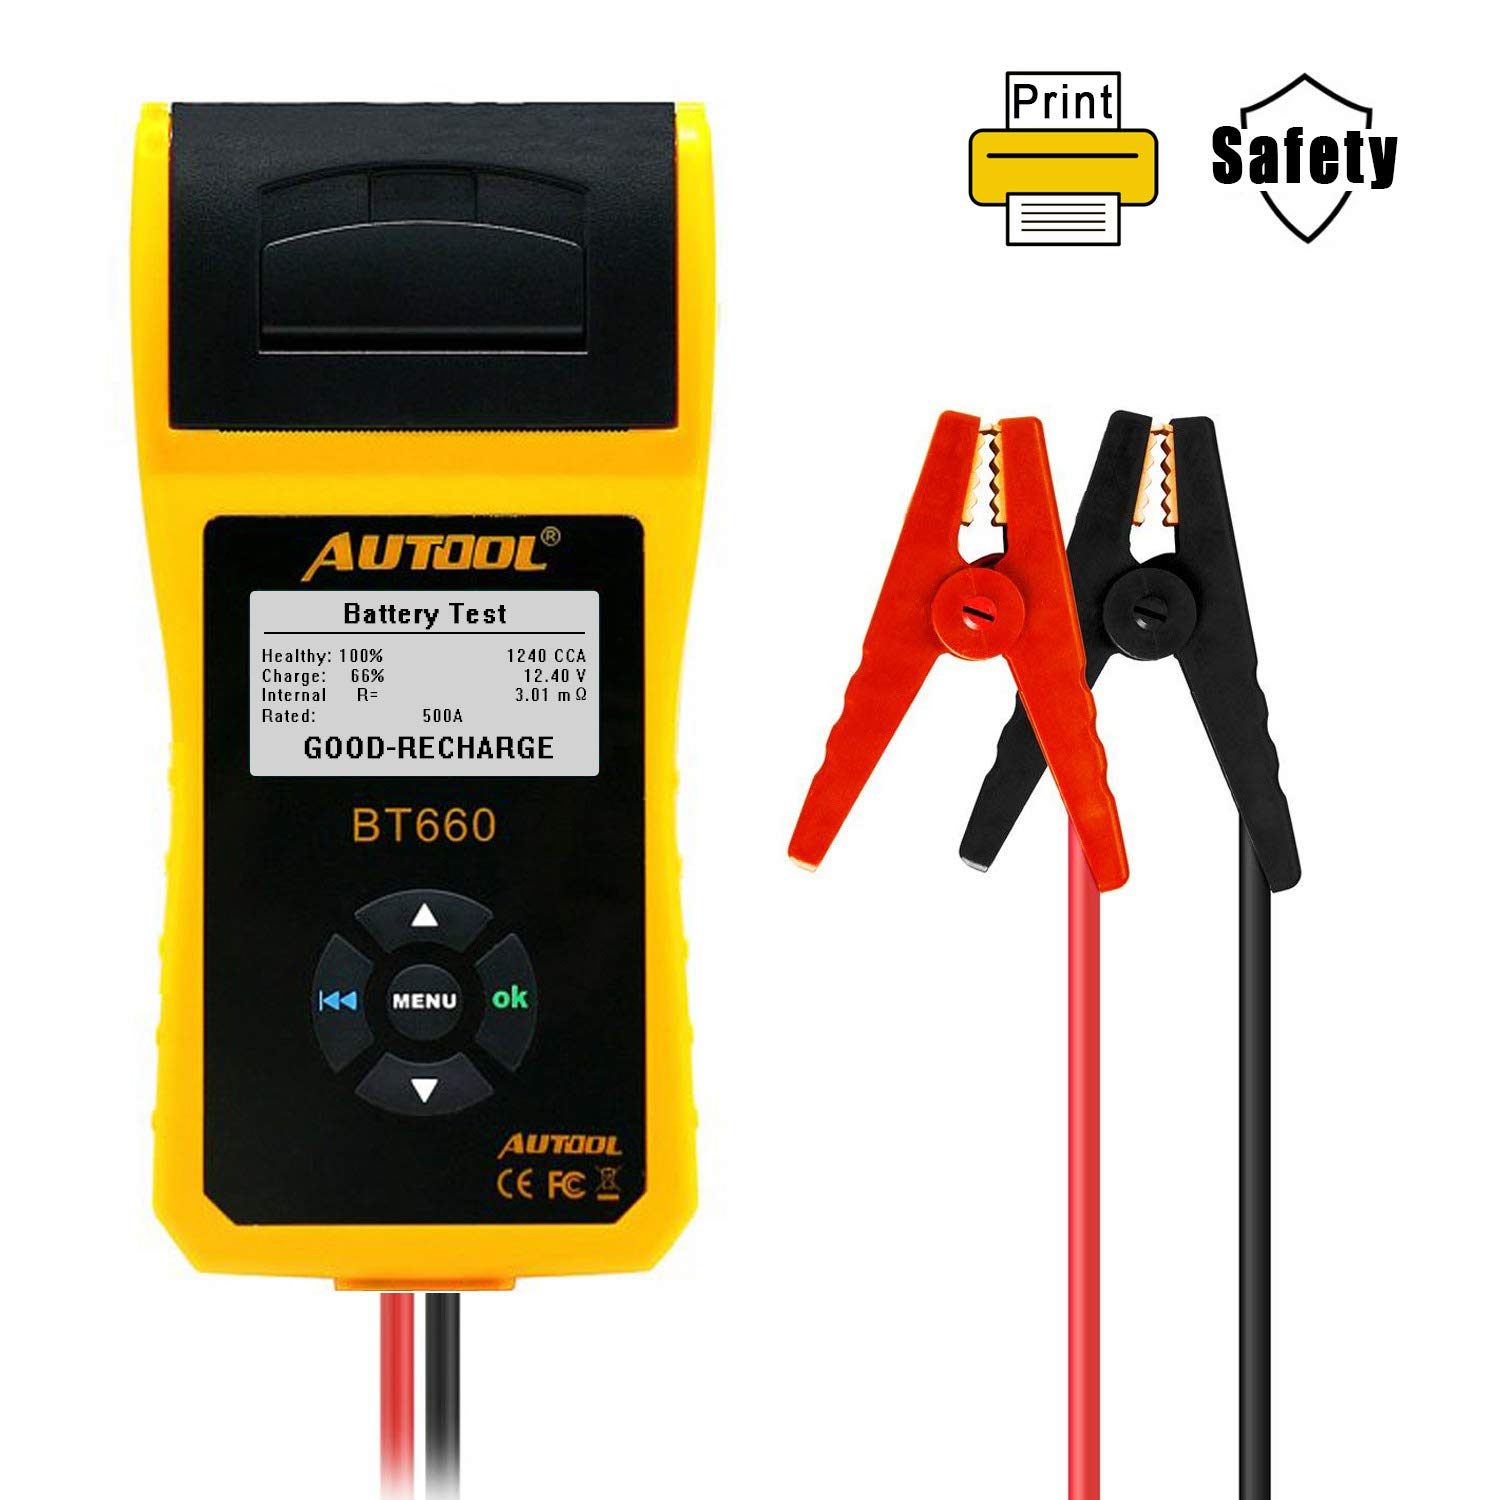 AUTOOL BT660 CCA 100-3000 12V/24V Battery Load Tester, Car Cranking and Charging System Analyzer Scan Tool with Printer for Heavy Duty Trucks, Cars, Motorcycles, Boats by AUTOOL (Image #8)